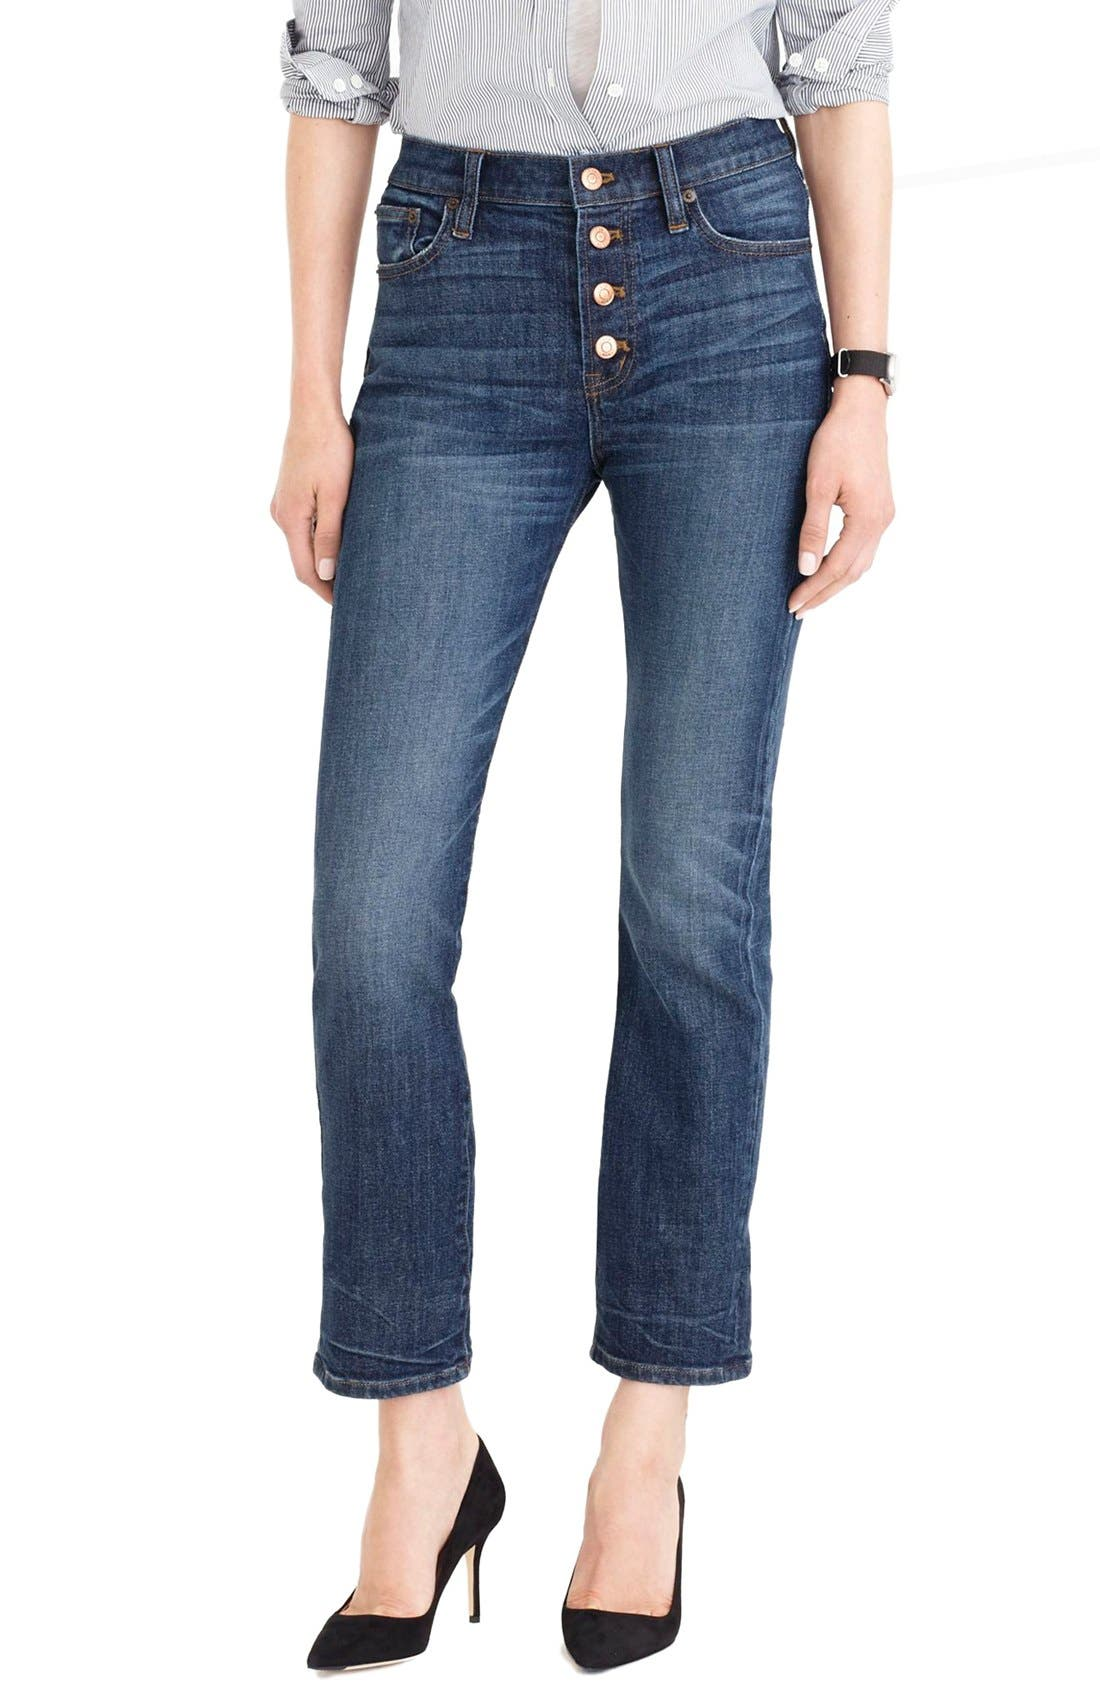 Alternate Image 1 Selected - J.Crew 'Straight Away' Stretch High Rise Crop Jeans